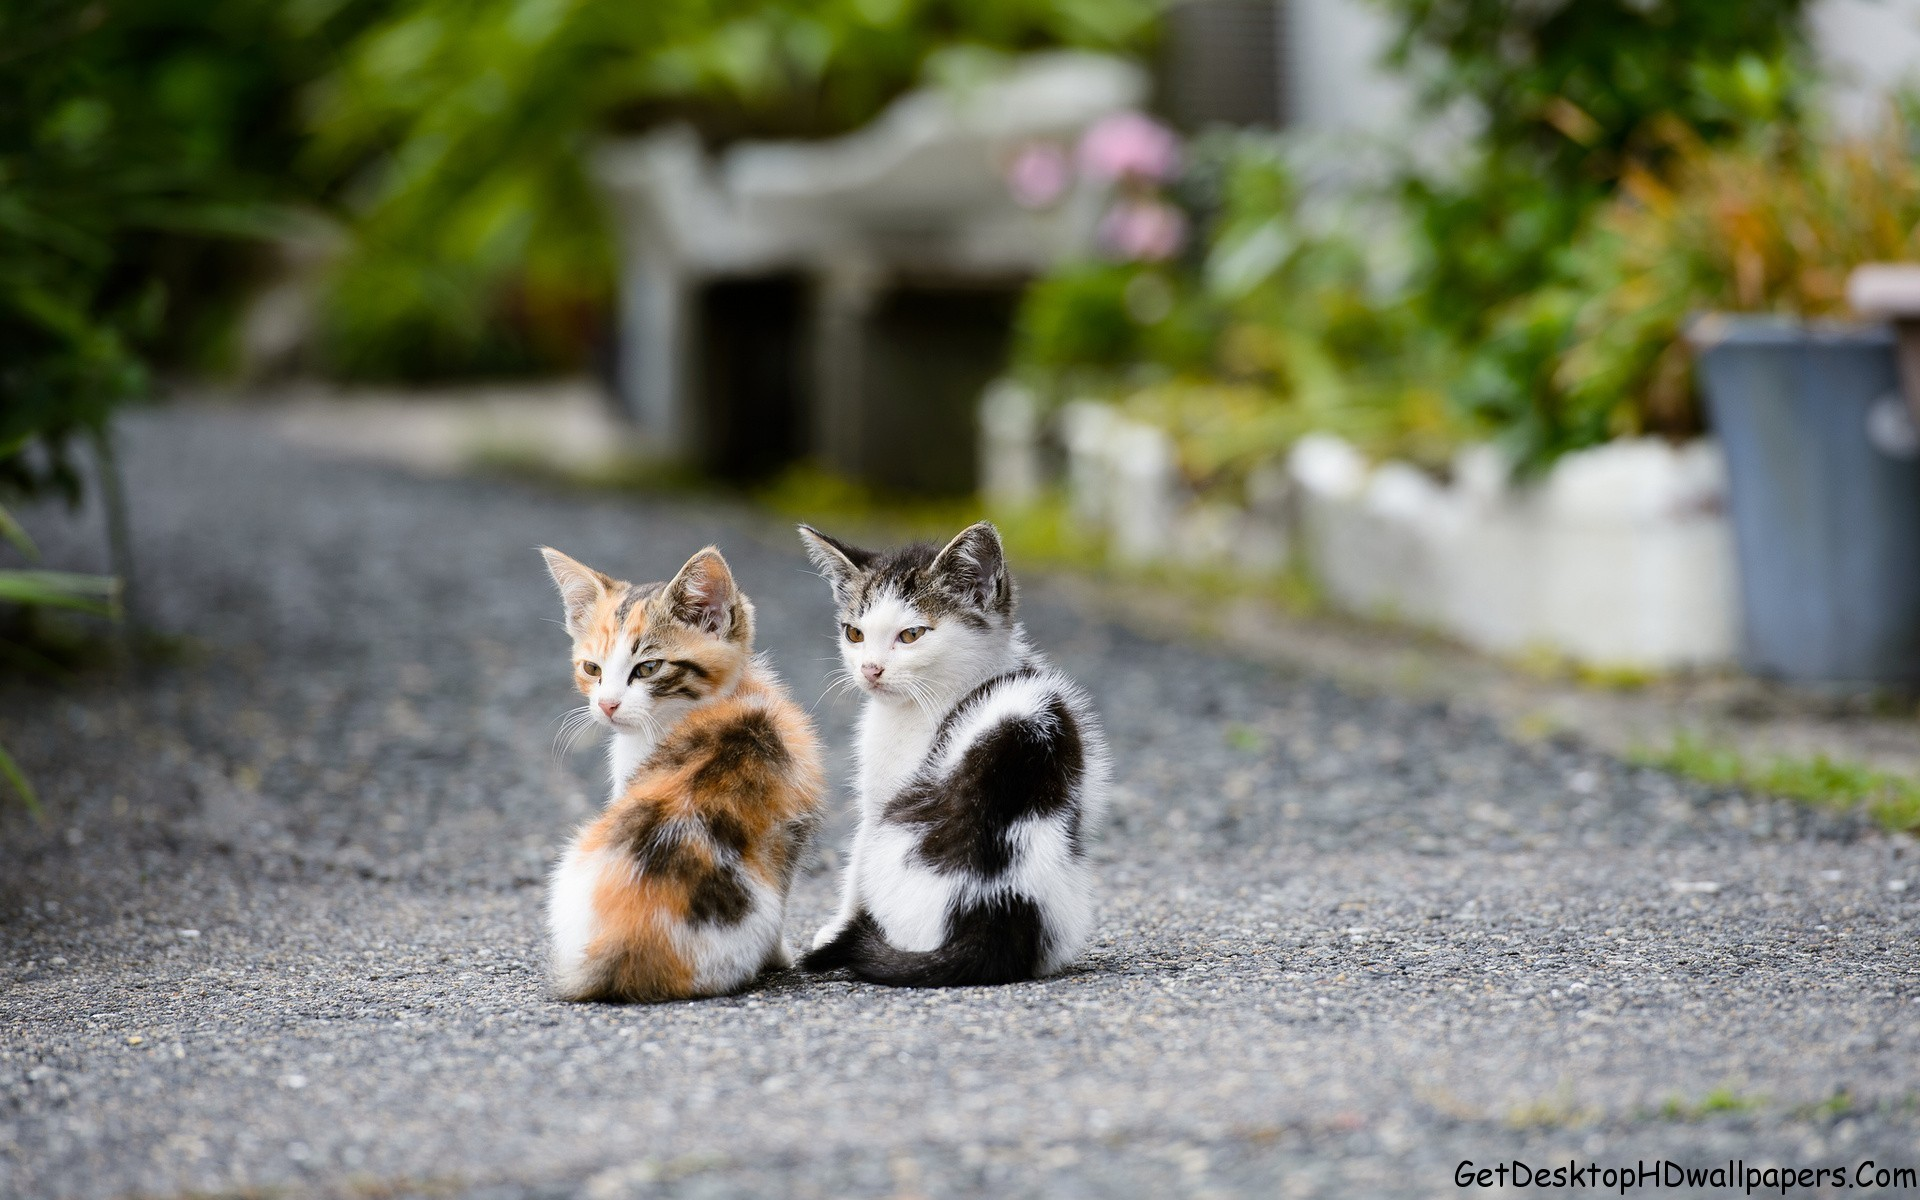 Explore Cute Cats, Adorable Animals, and more! HD Computer Animal Wallpaper  …